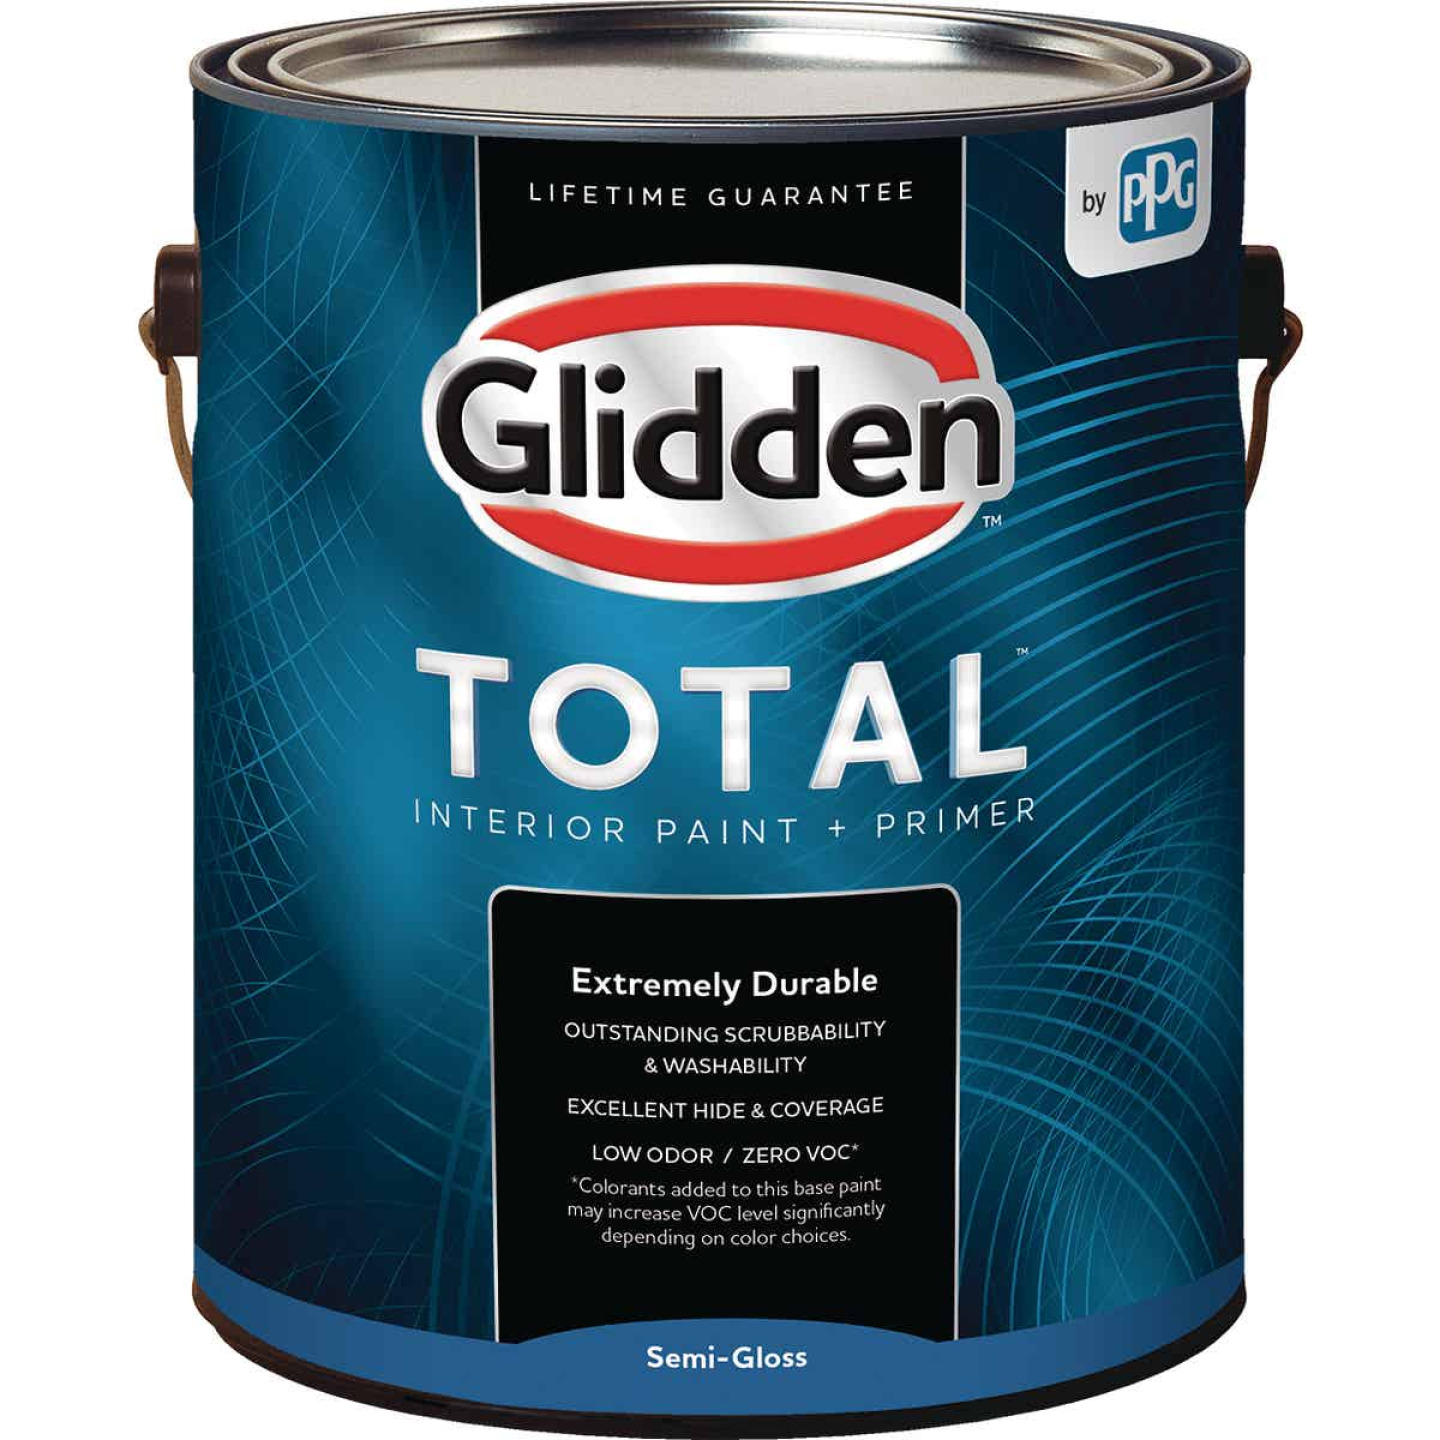 Glidden Total Interior Paint + Primer Semi-Gloss White & Pastel Base 1 Gallon Image 1